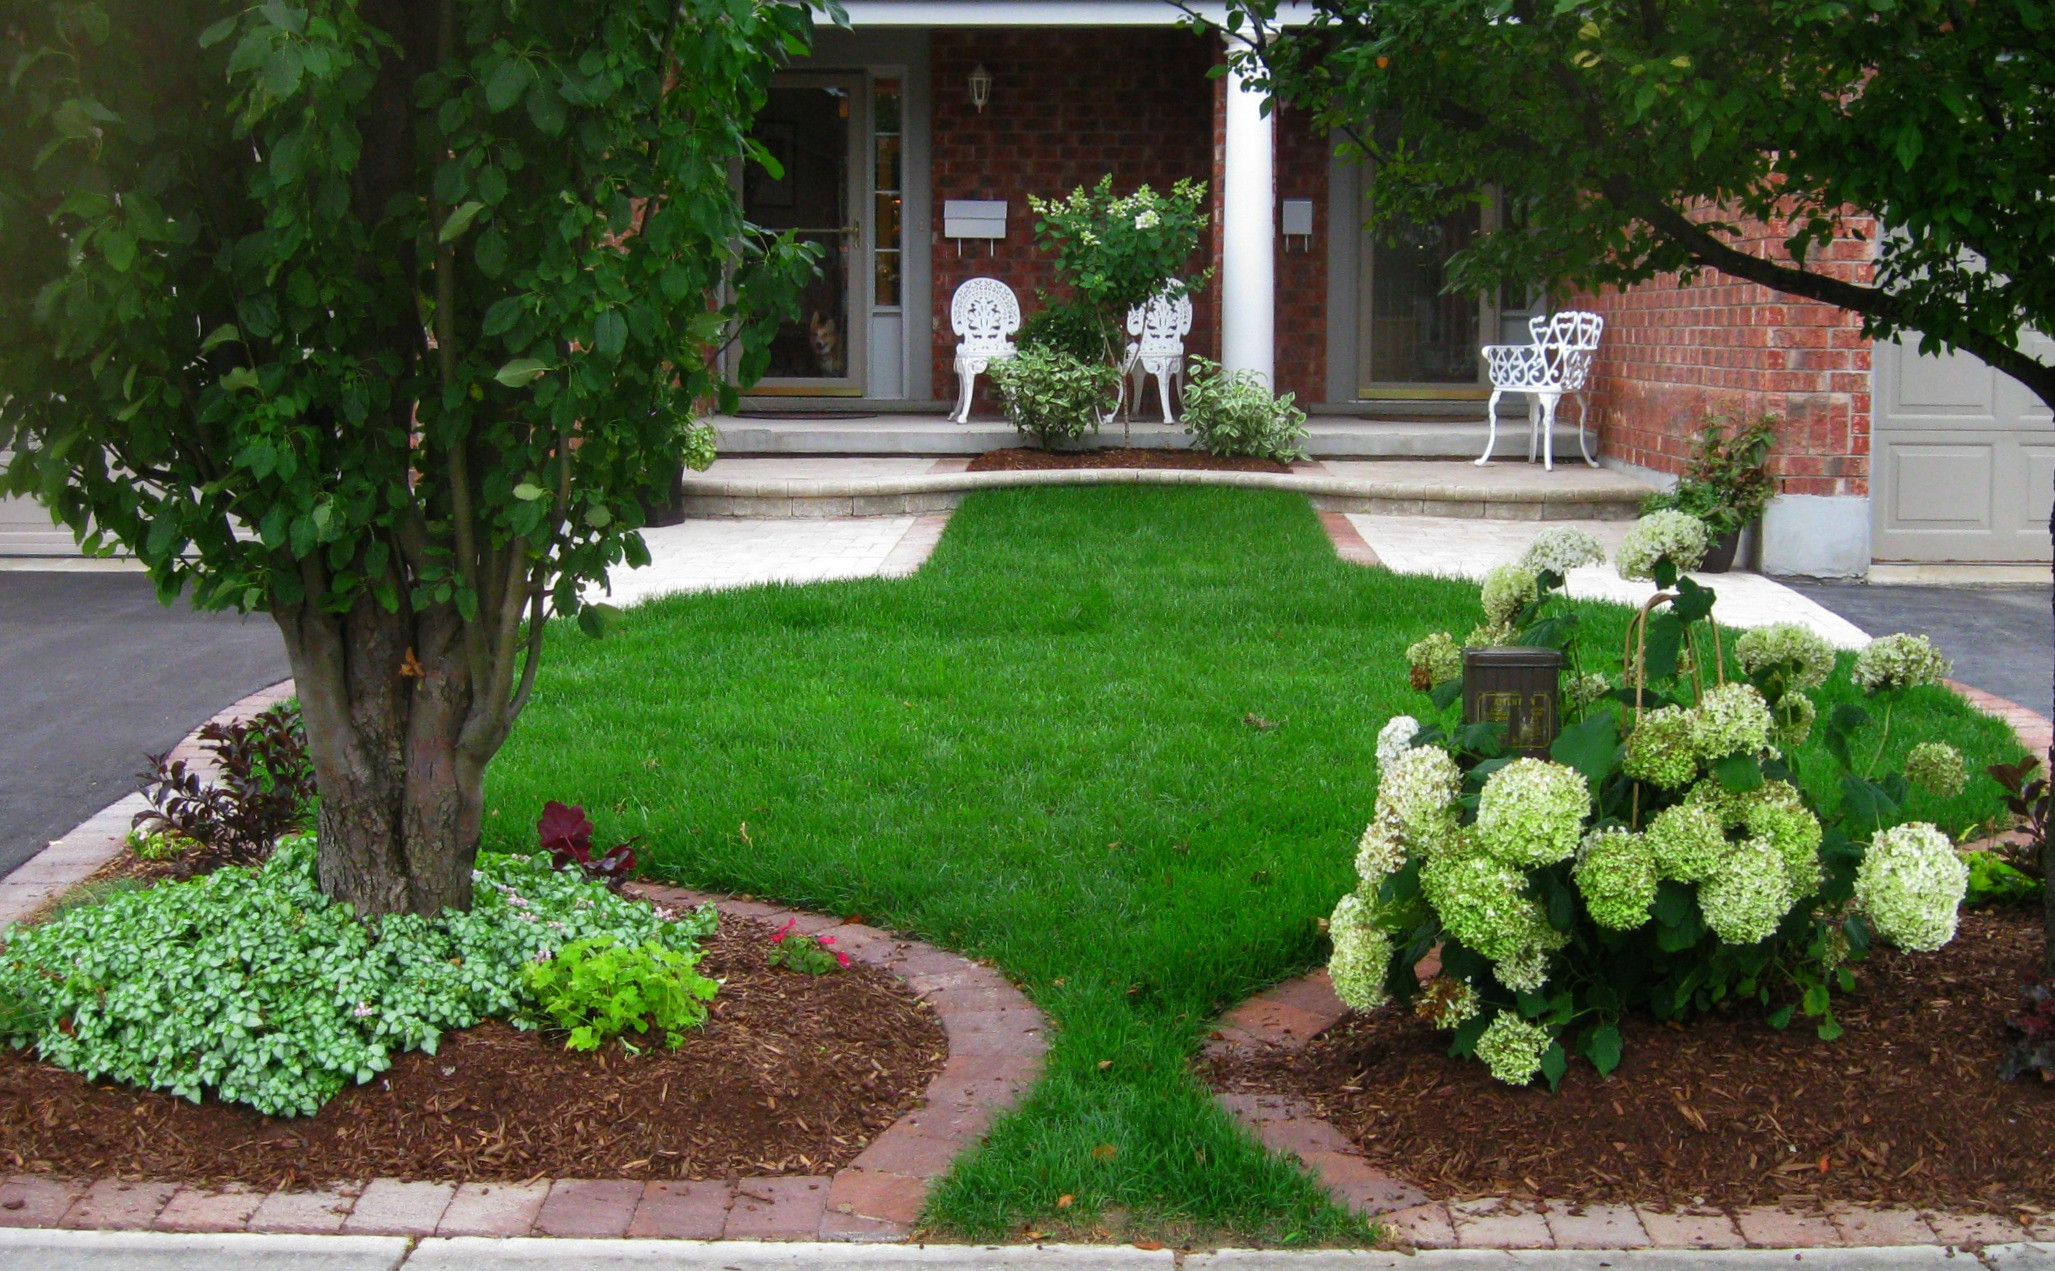 Landscape Designs For Small Yards  Creative Ways to Arranging Your Small Yard Landscaping